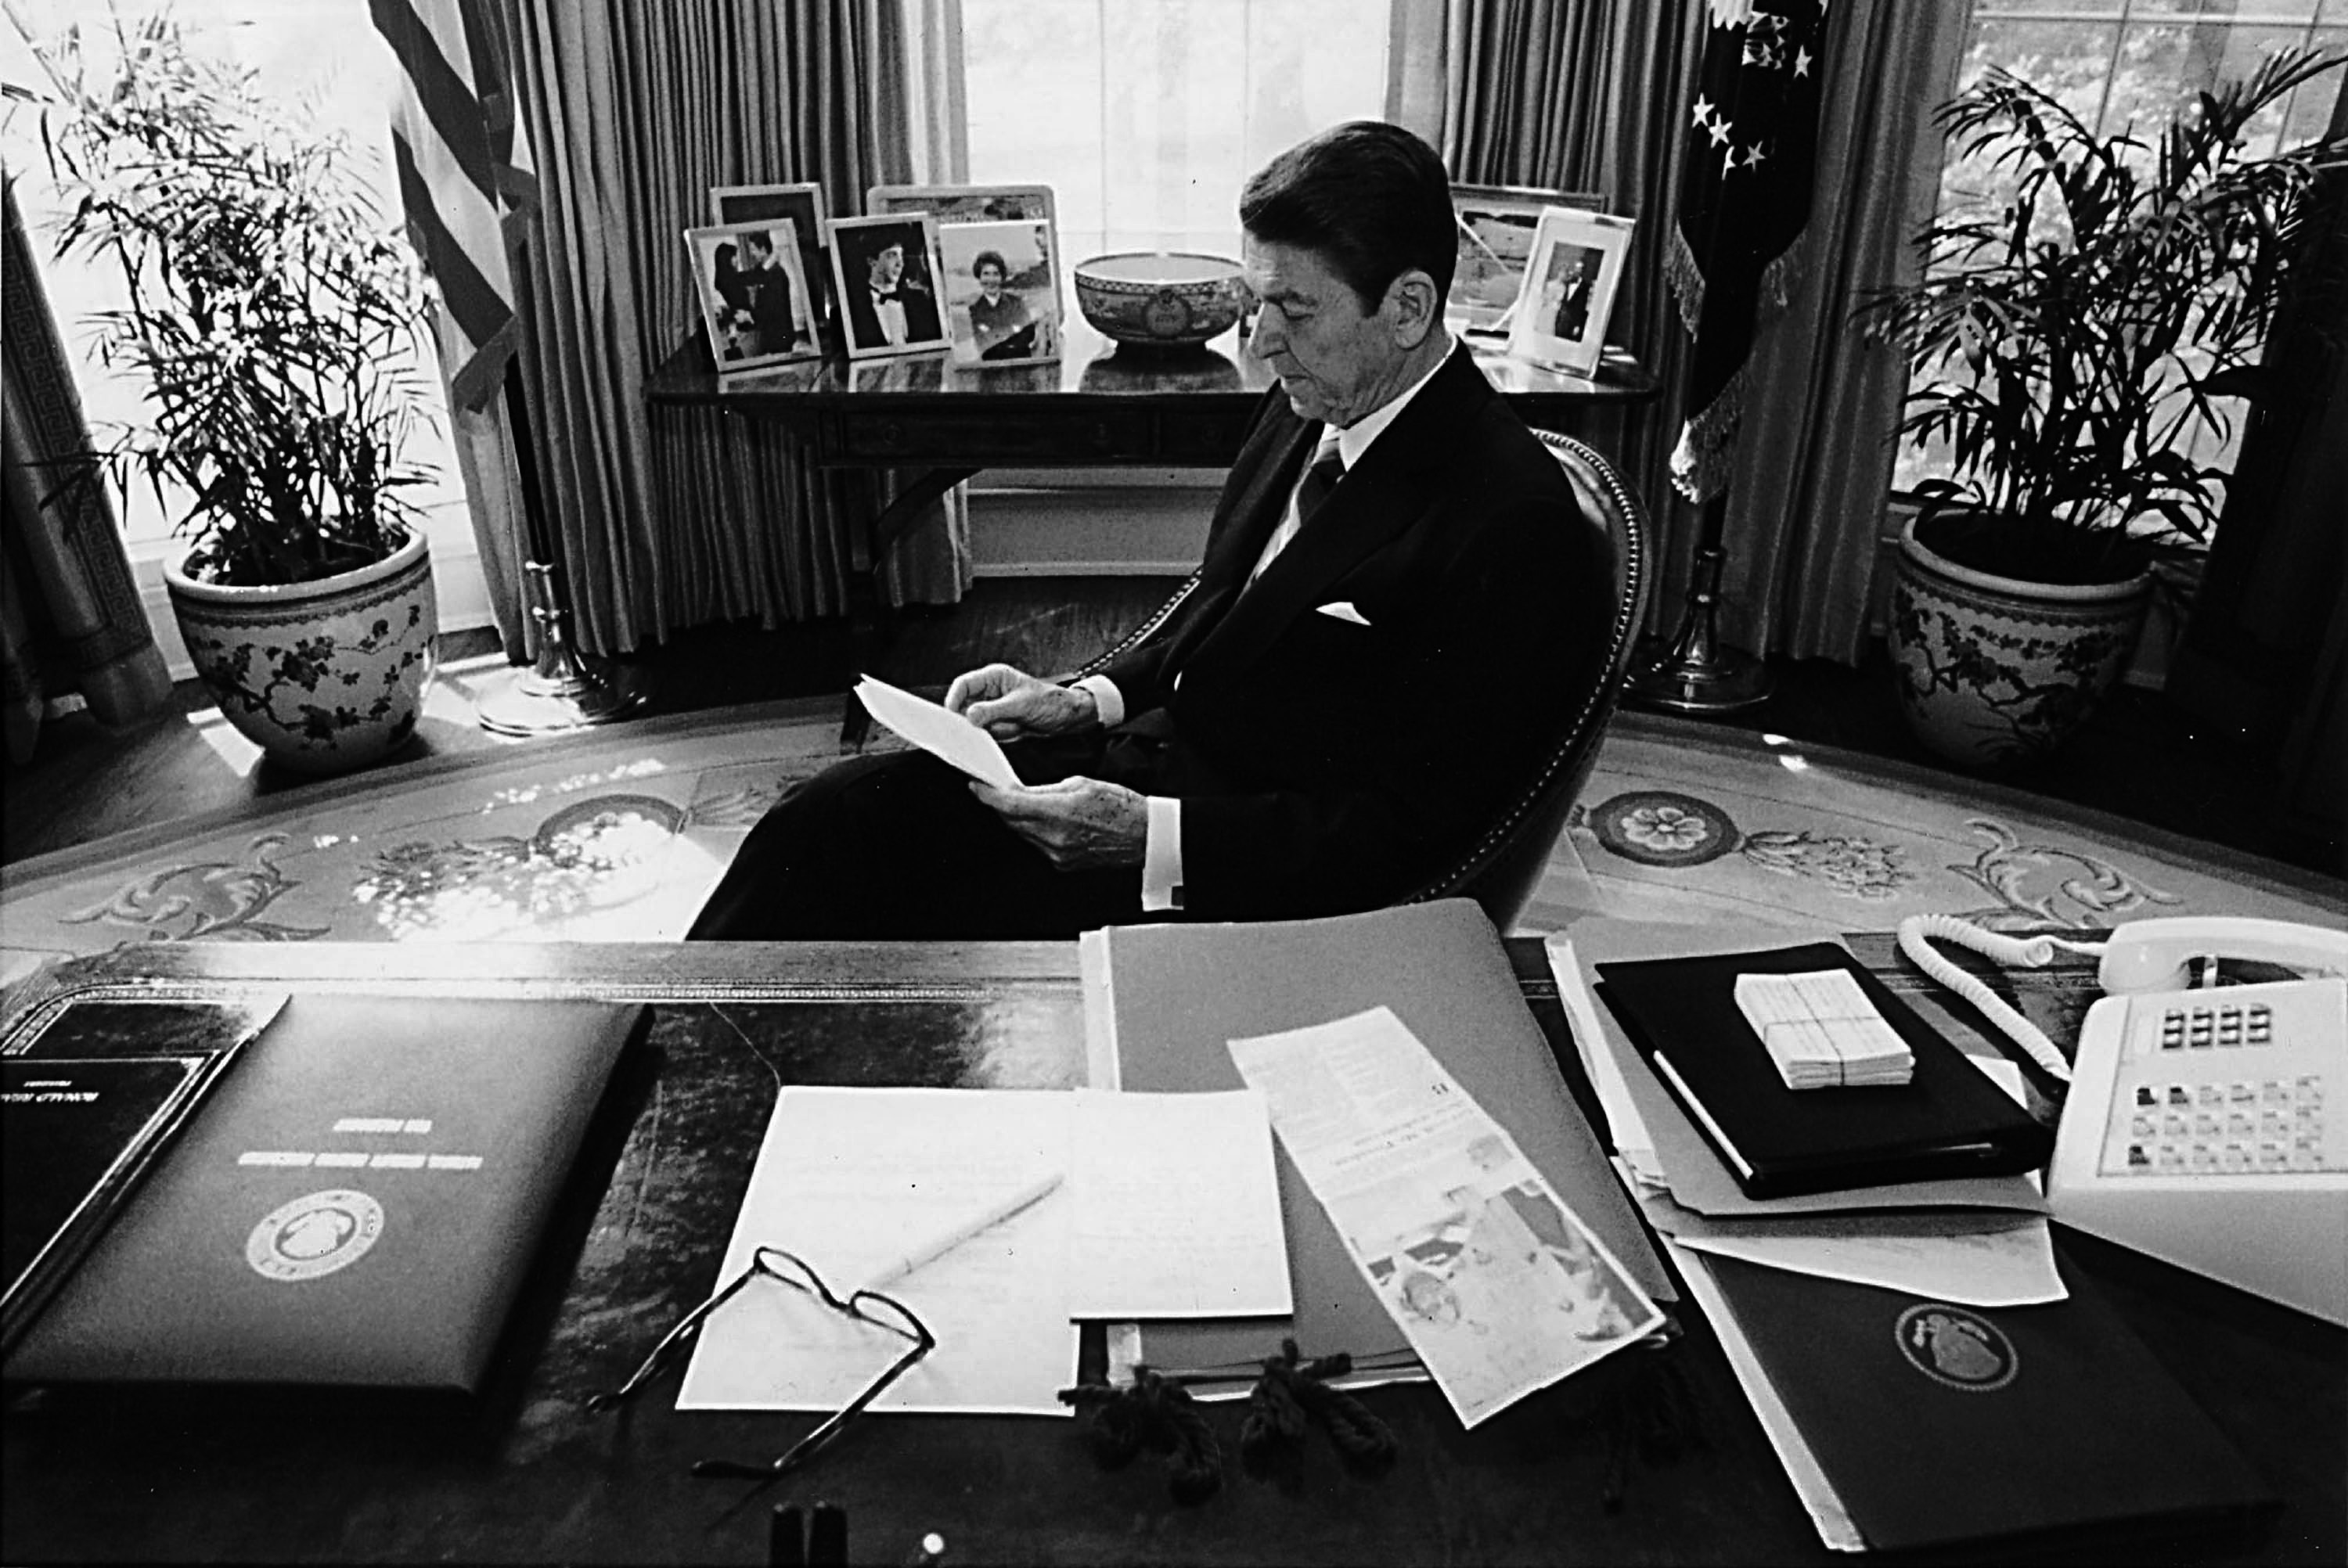 President Ronald Reagan prepares a speech at his desk in the Oval Office in 1981. (Photo by Michael Evans/The White House/Getty Images)